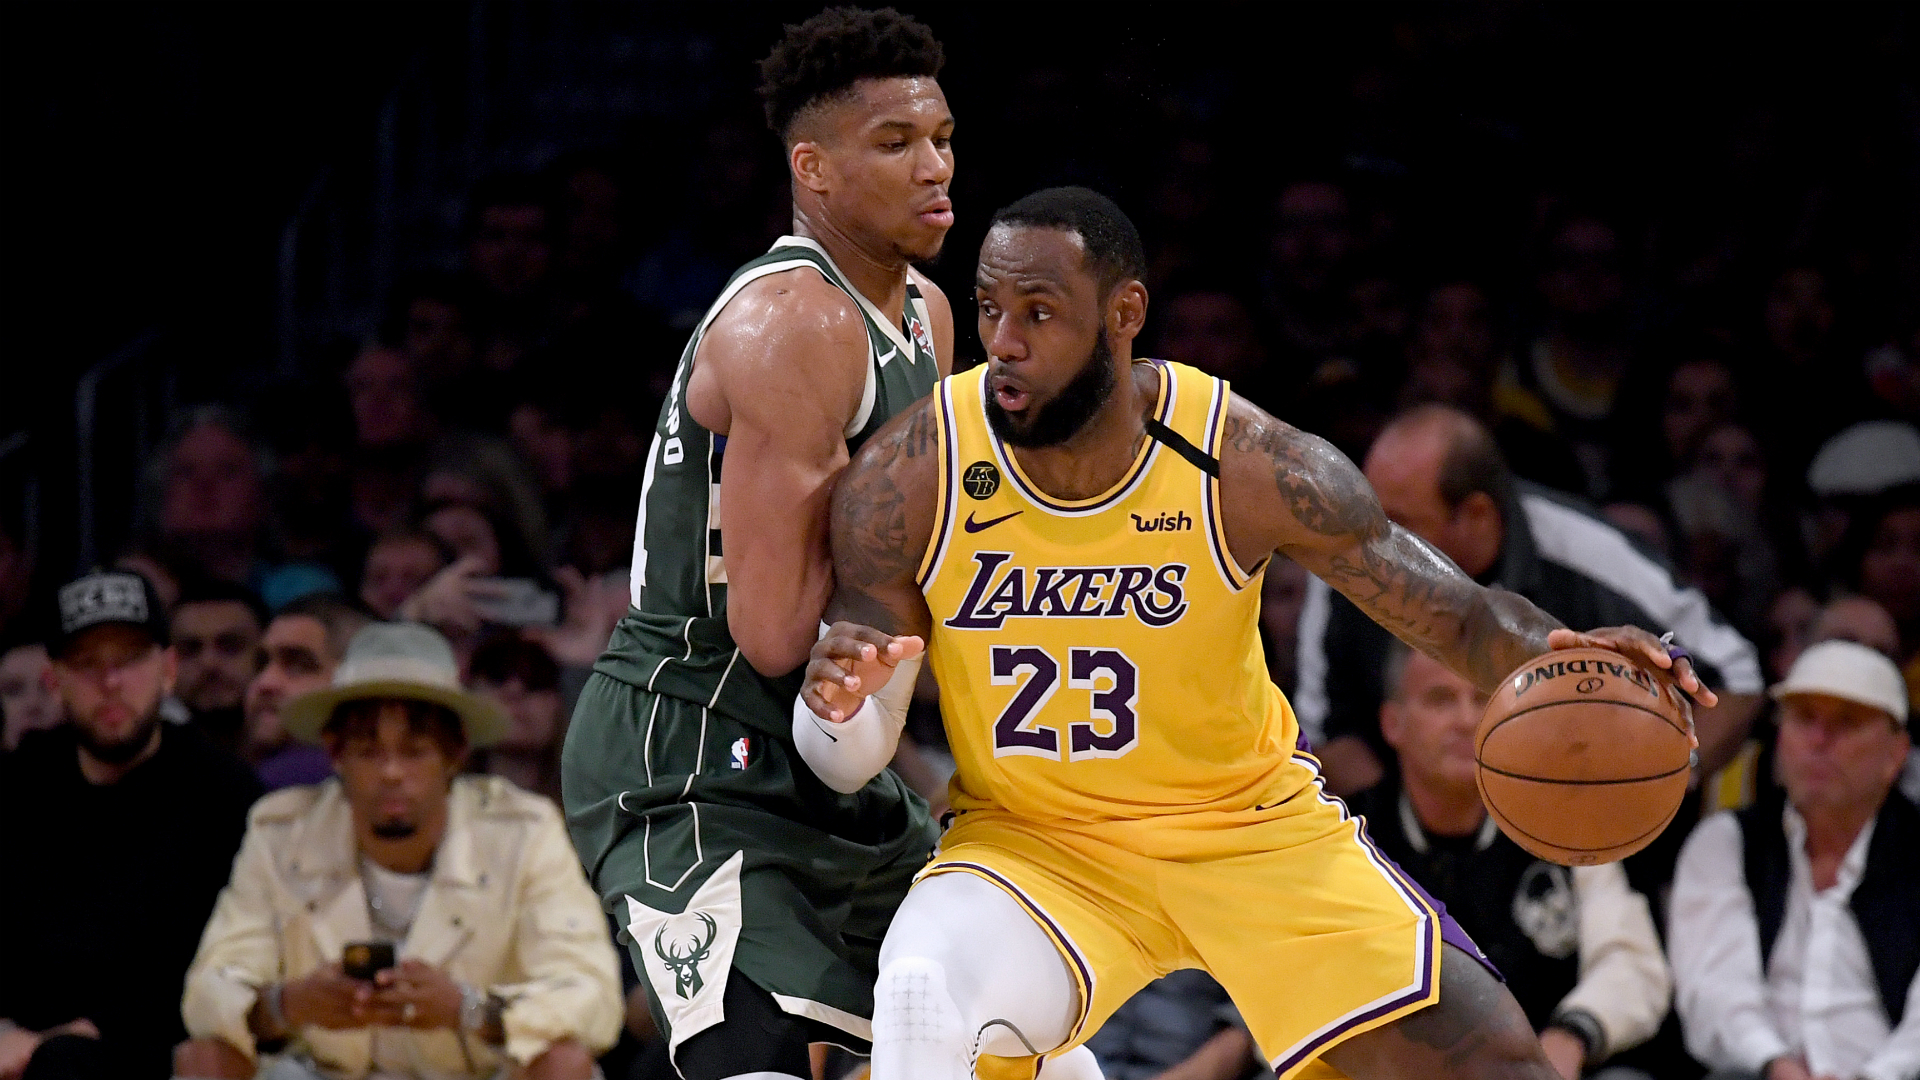 LeBron Lakers' take down Giannis & Bucks to clinch playoff spot, Baynes makes history